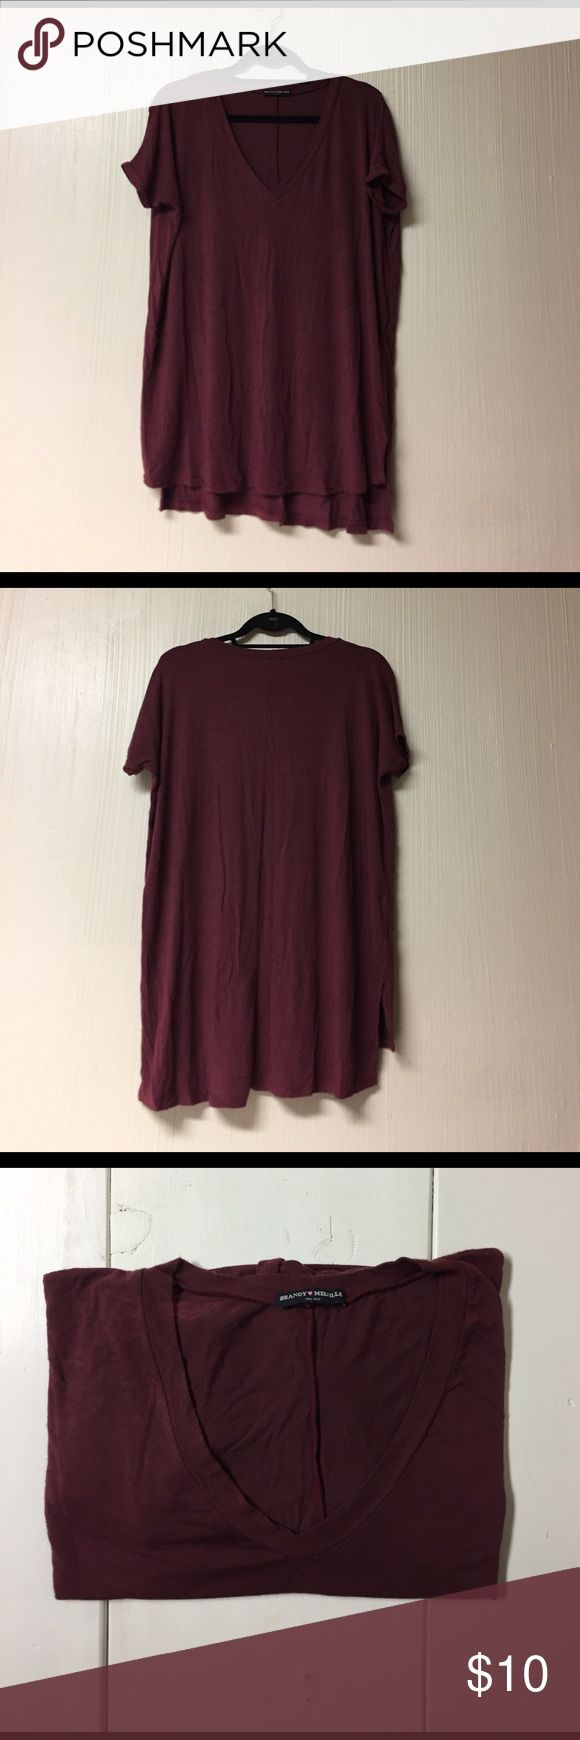 Brandy Melville Milan Maroon Tee Comfy, soft BM tee! - Oversize fit - Great for spring & summer - V neck with side slits hi/low cut - Made of 60% cotton, 40% micromodal - Good condition, inevitable pilling on tee (see pic) - Please ask any questions! Brandy Melville Tops